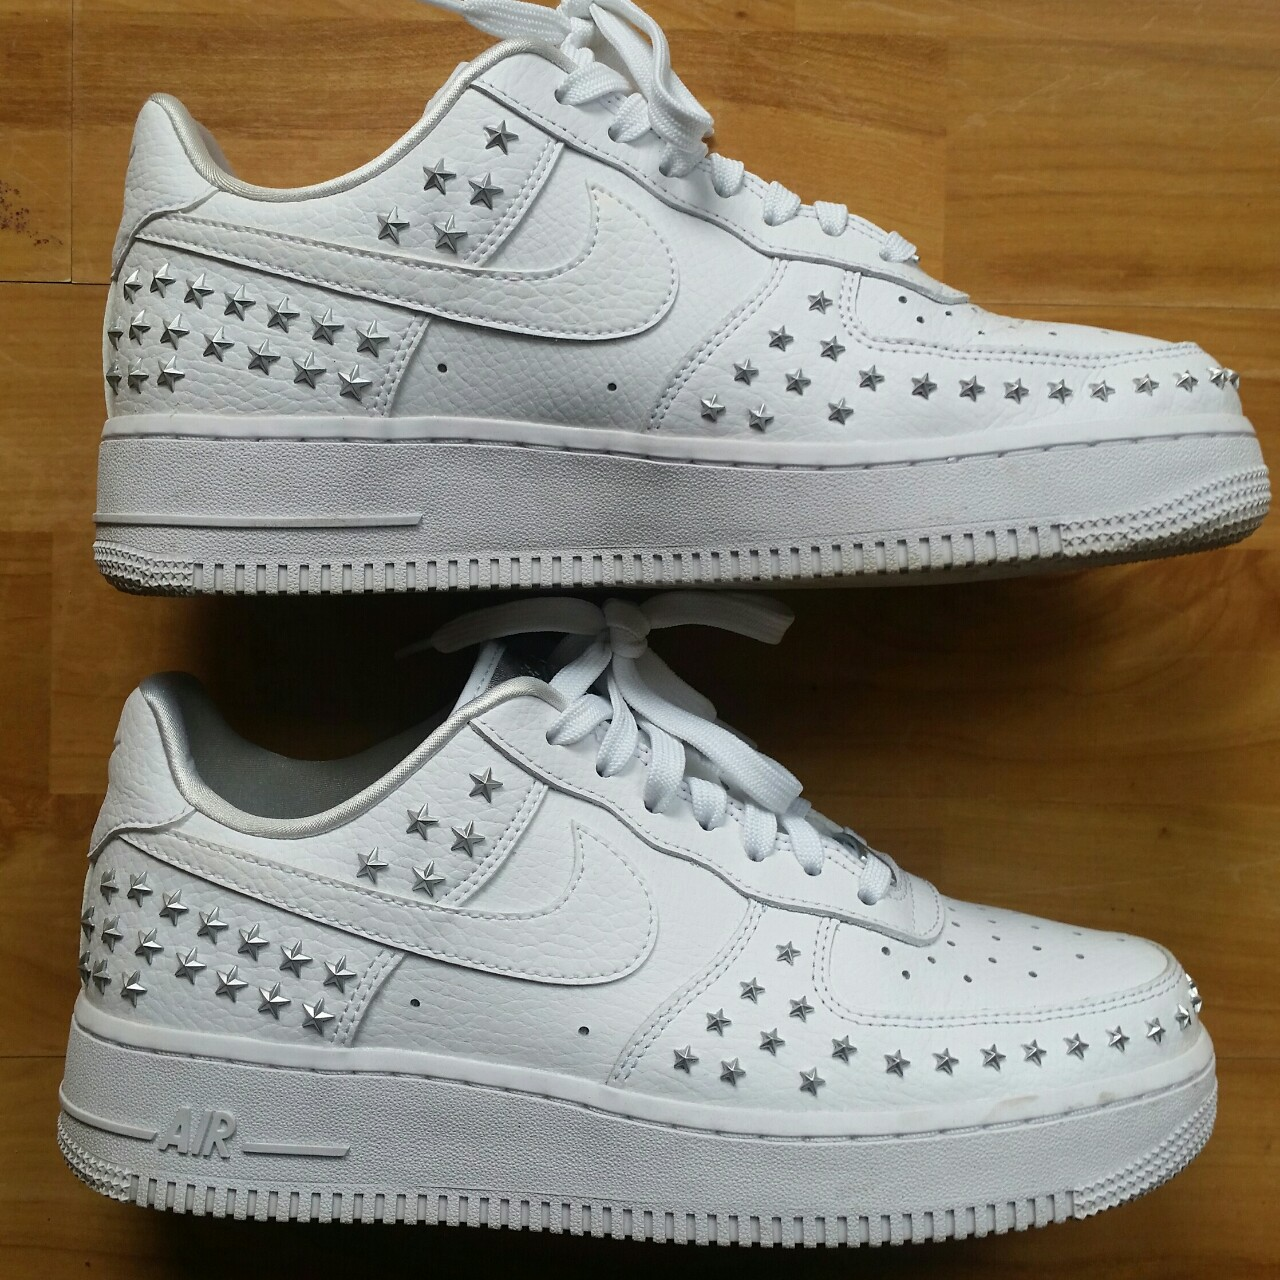 Nike Air Force 1 One White Star Studded